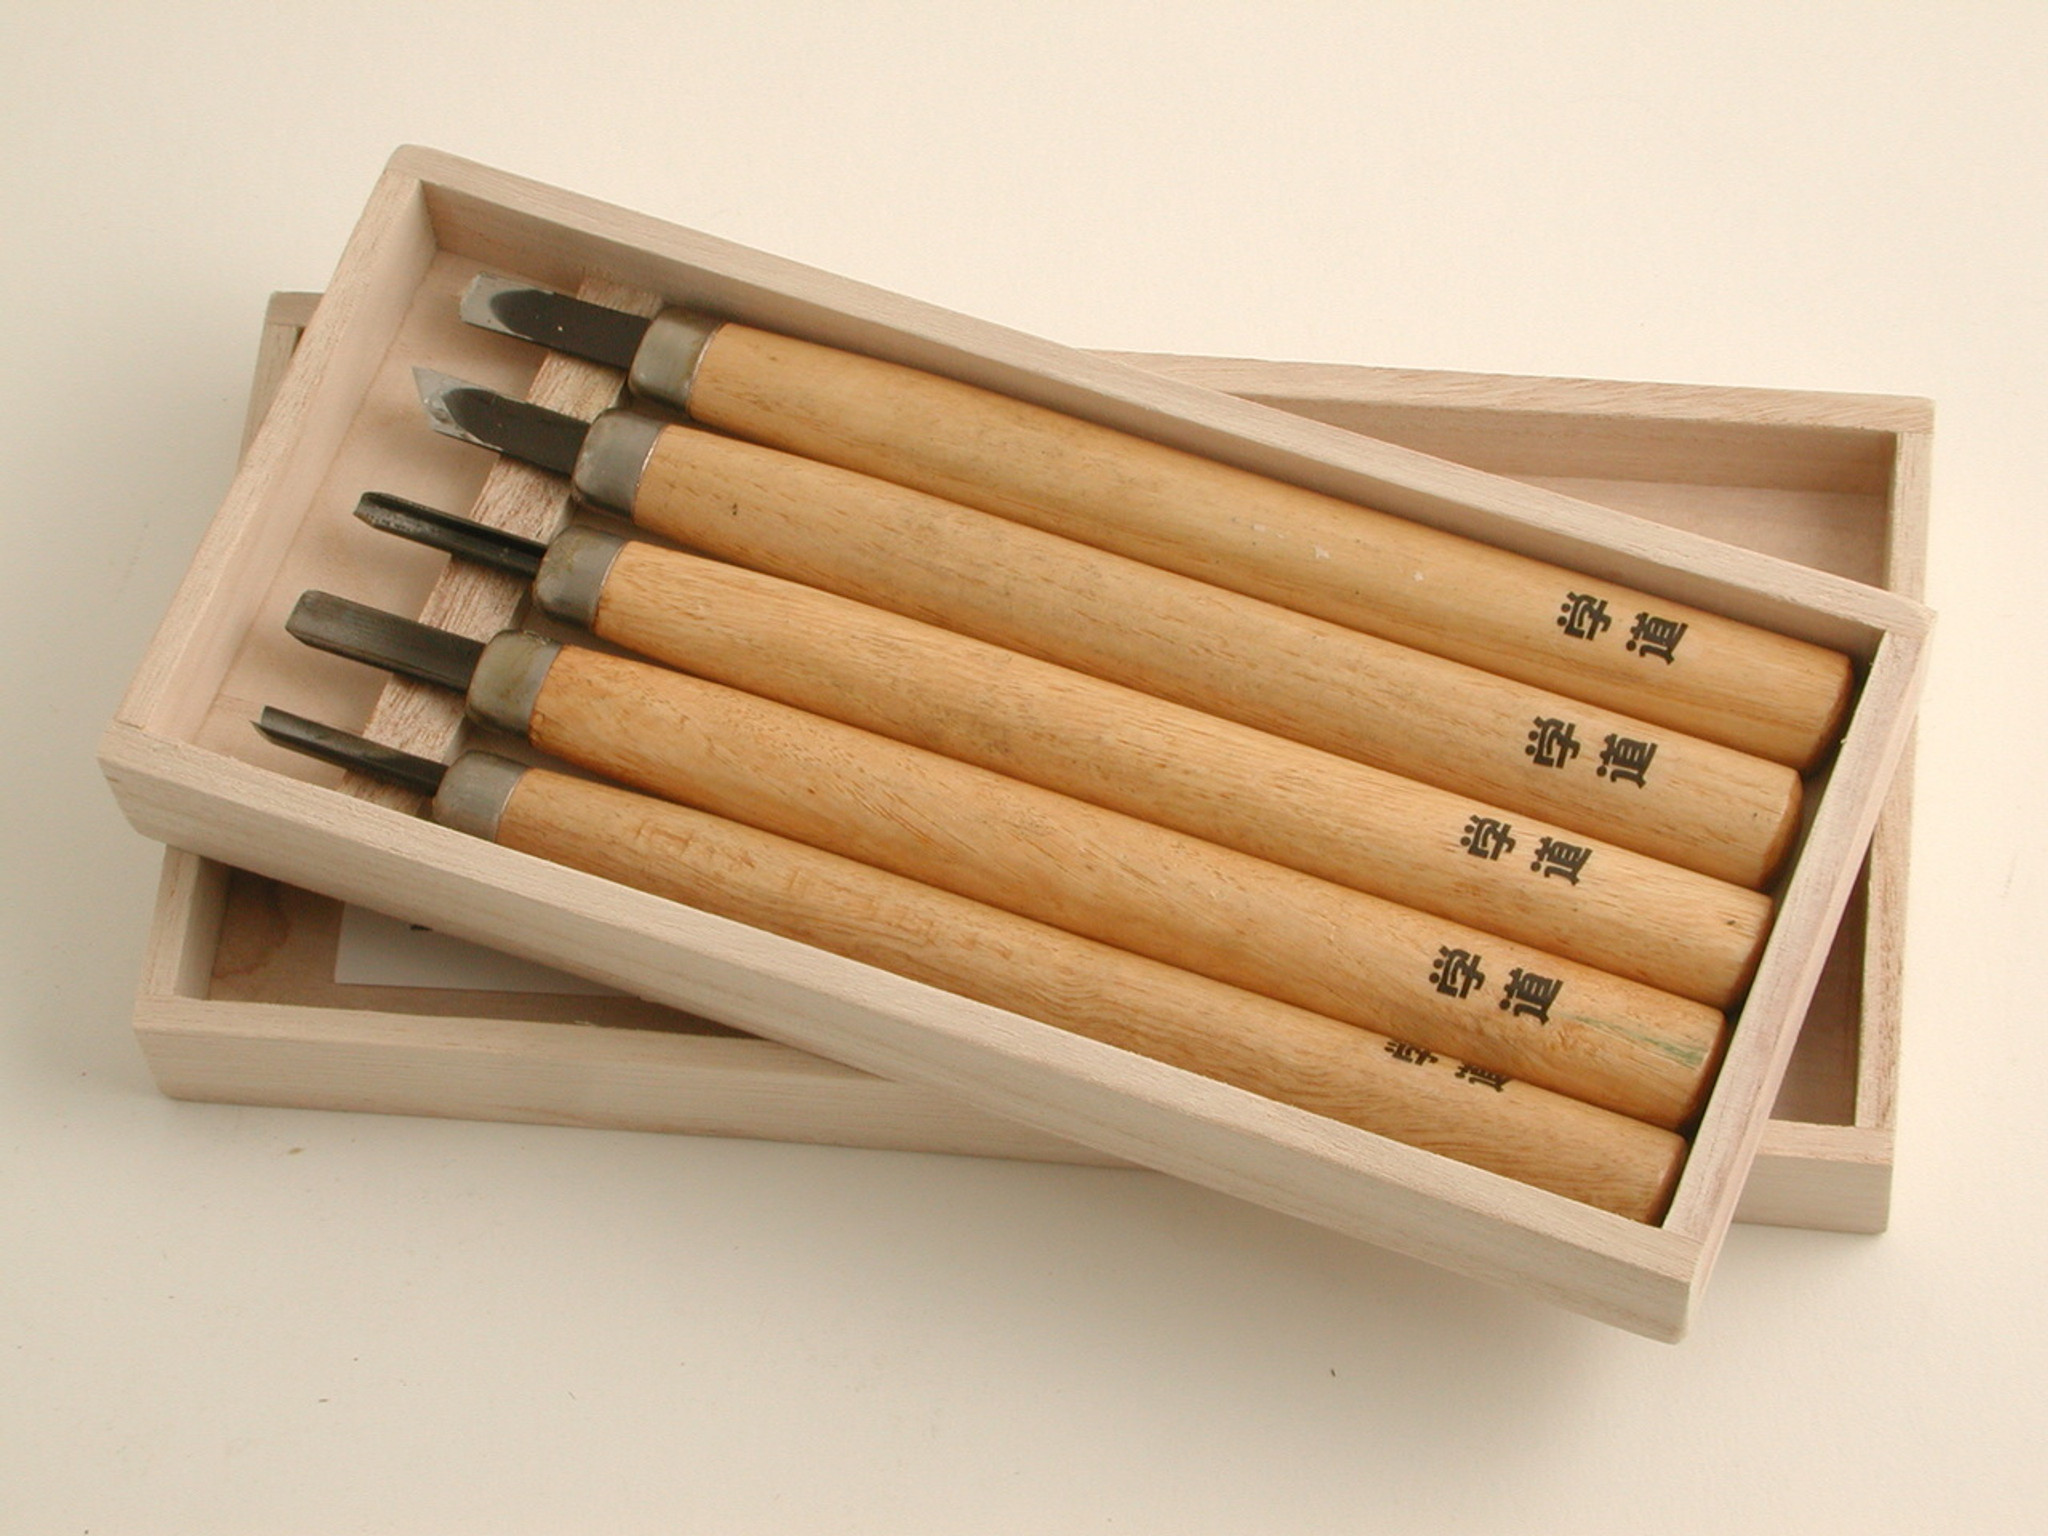 Japanese carving tools set of